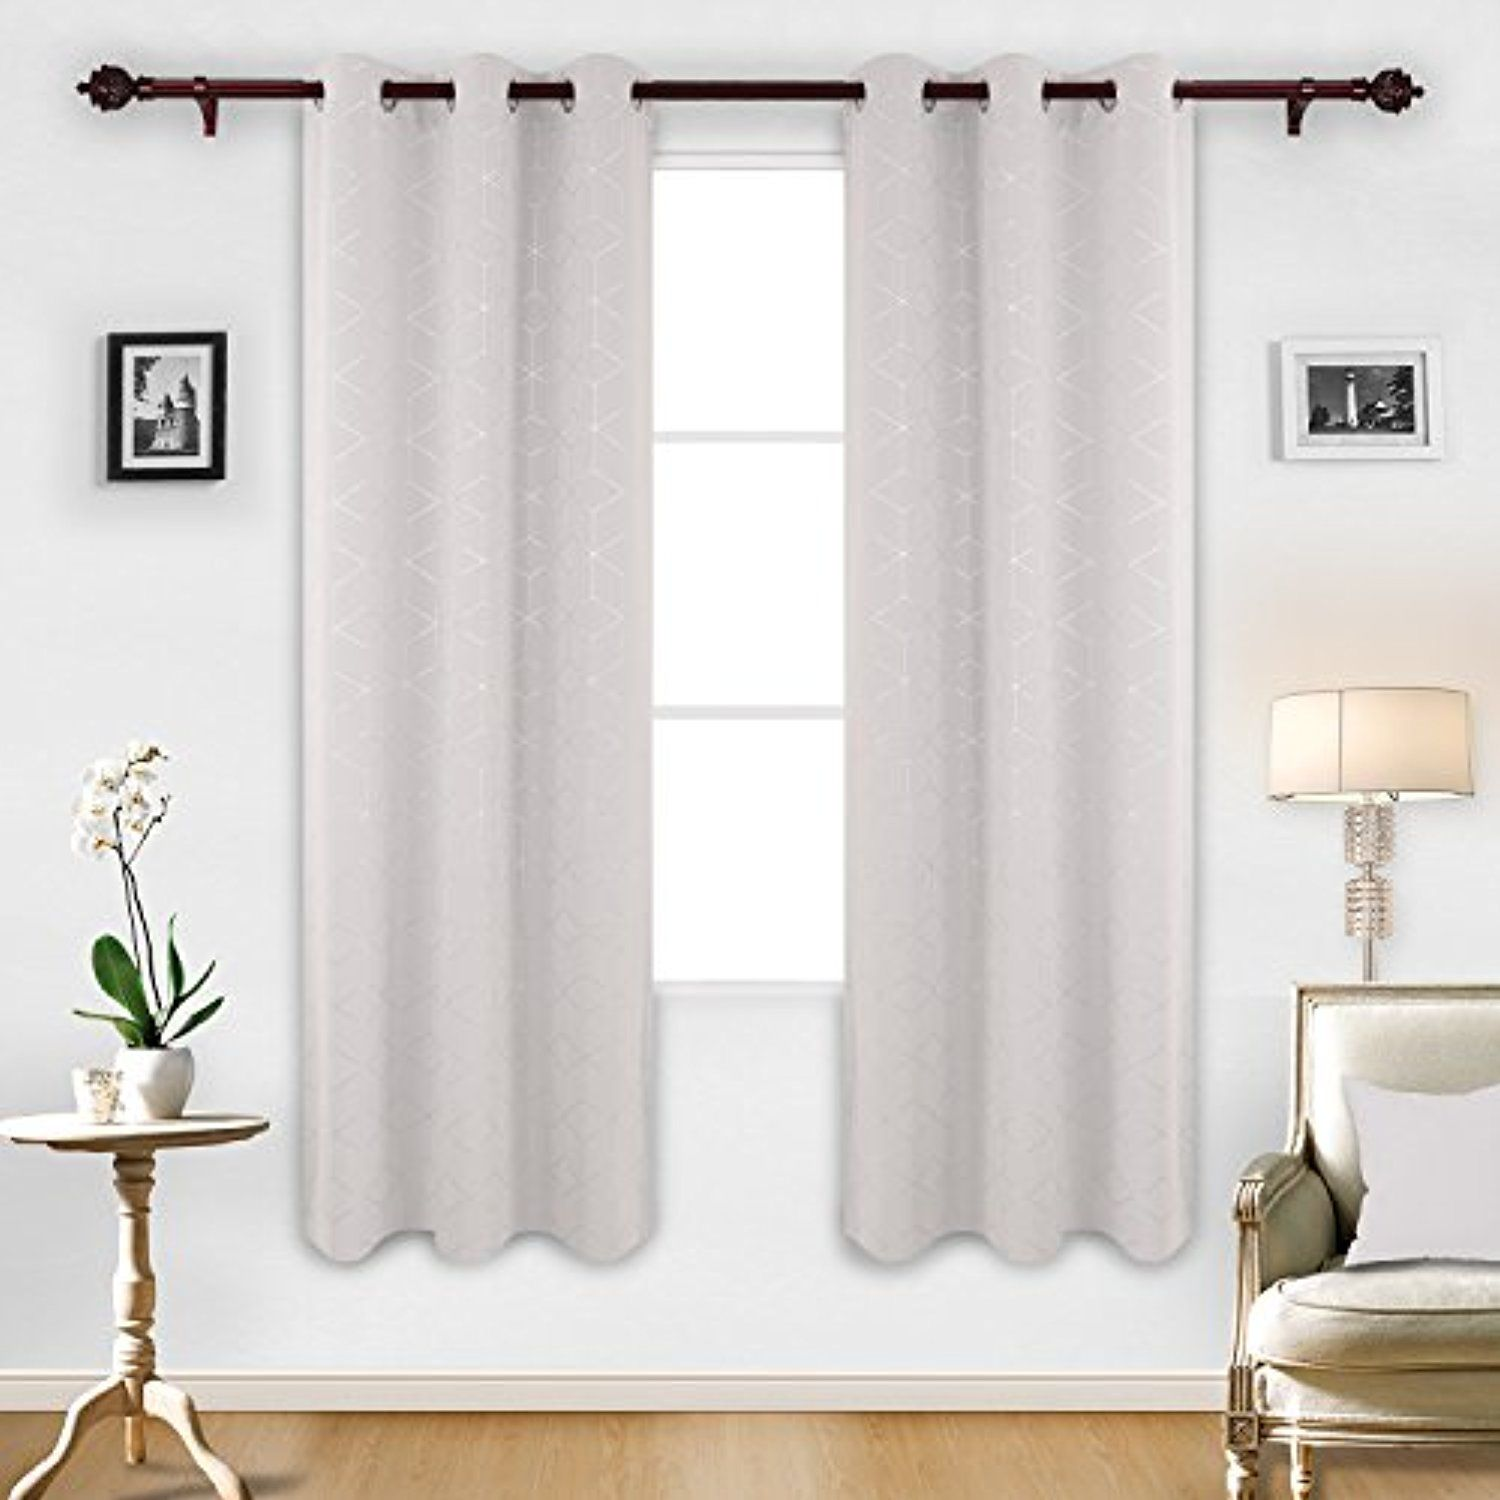 Deconovo Sliver Diamond Foil Print Grommet Room Darkening Thermal Insulated Curtains Blackout Window Panels For Bedroom Width 42 Inch By Length 84